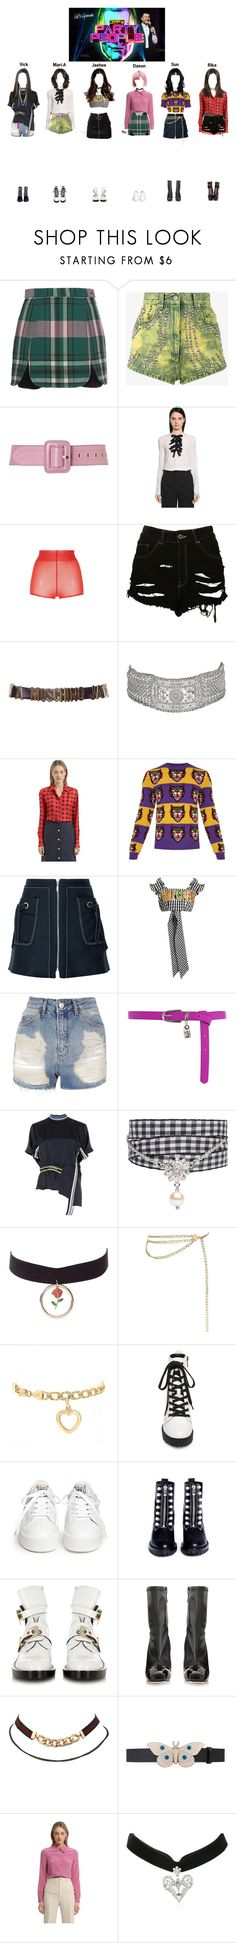 """""""StarZ at JYP's Party People"""" by starz-official ❤ liked on Polyvore featuring Carven, Gucci, Lipsy, Rochas, N°21, The Ragged Priest, Moschino, Larusmiani, Kenzo and House of Holland"""